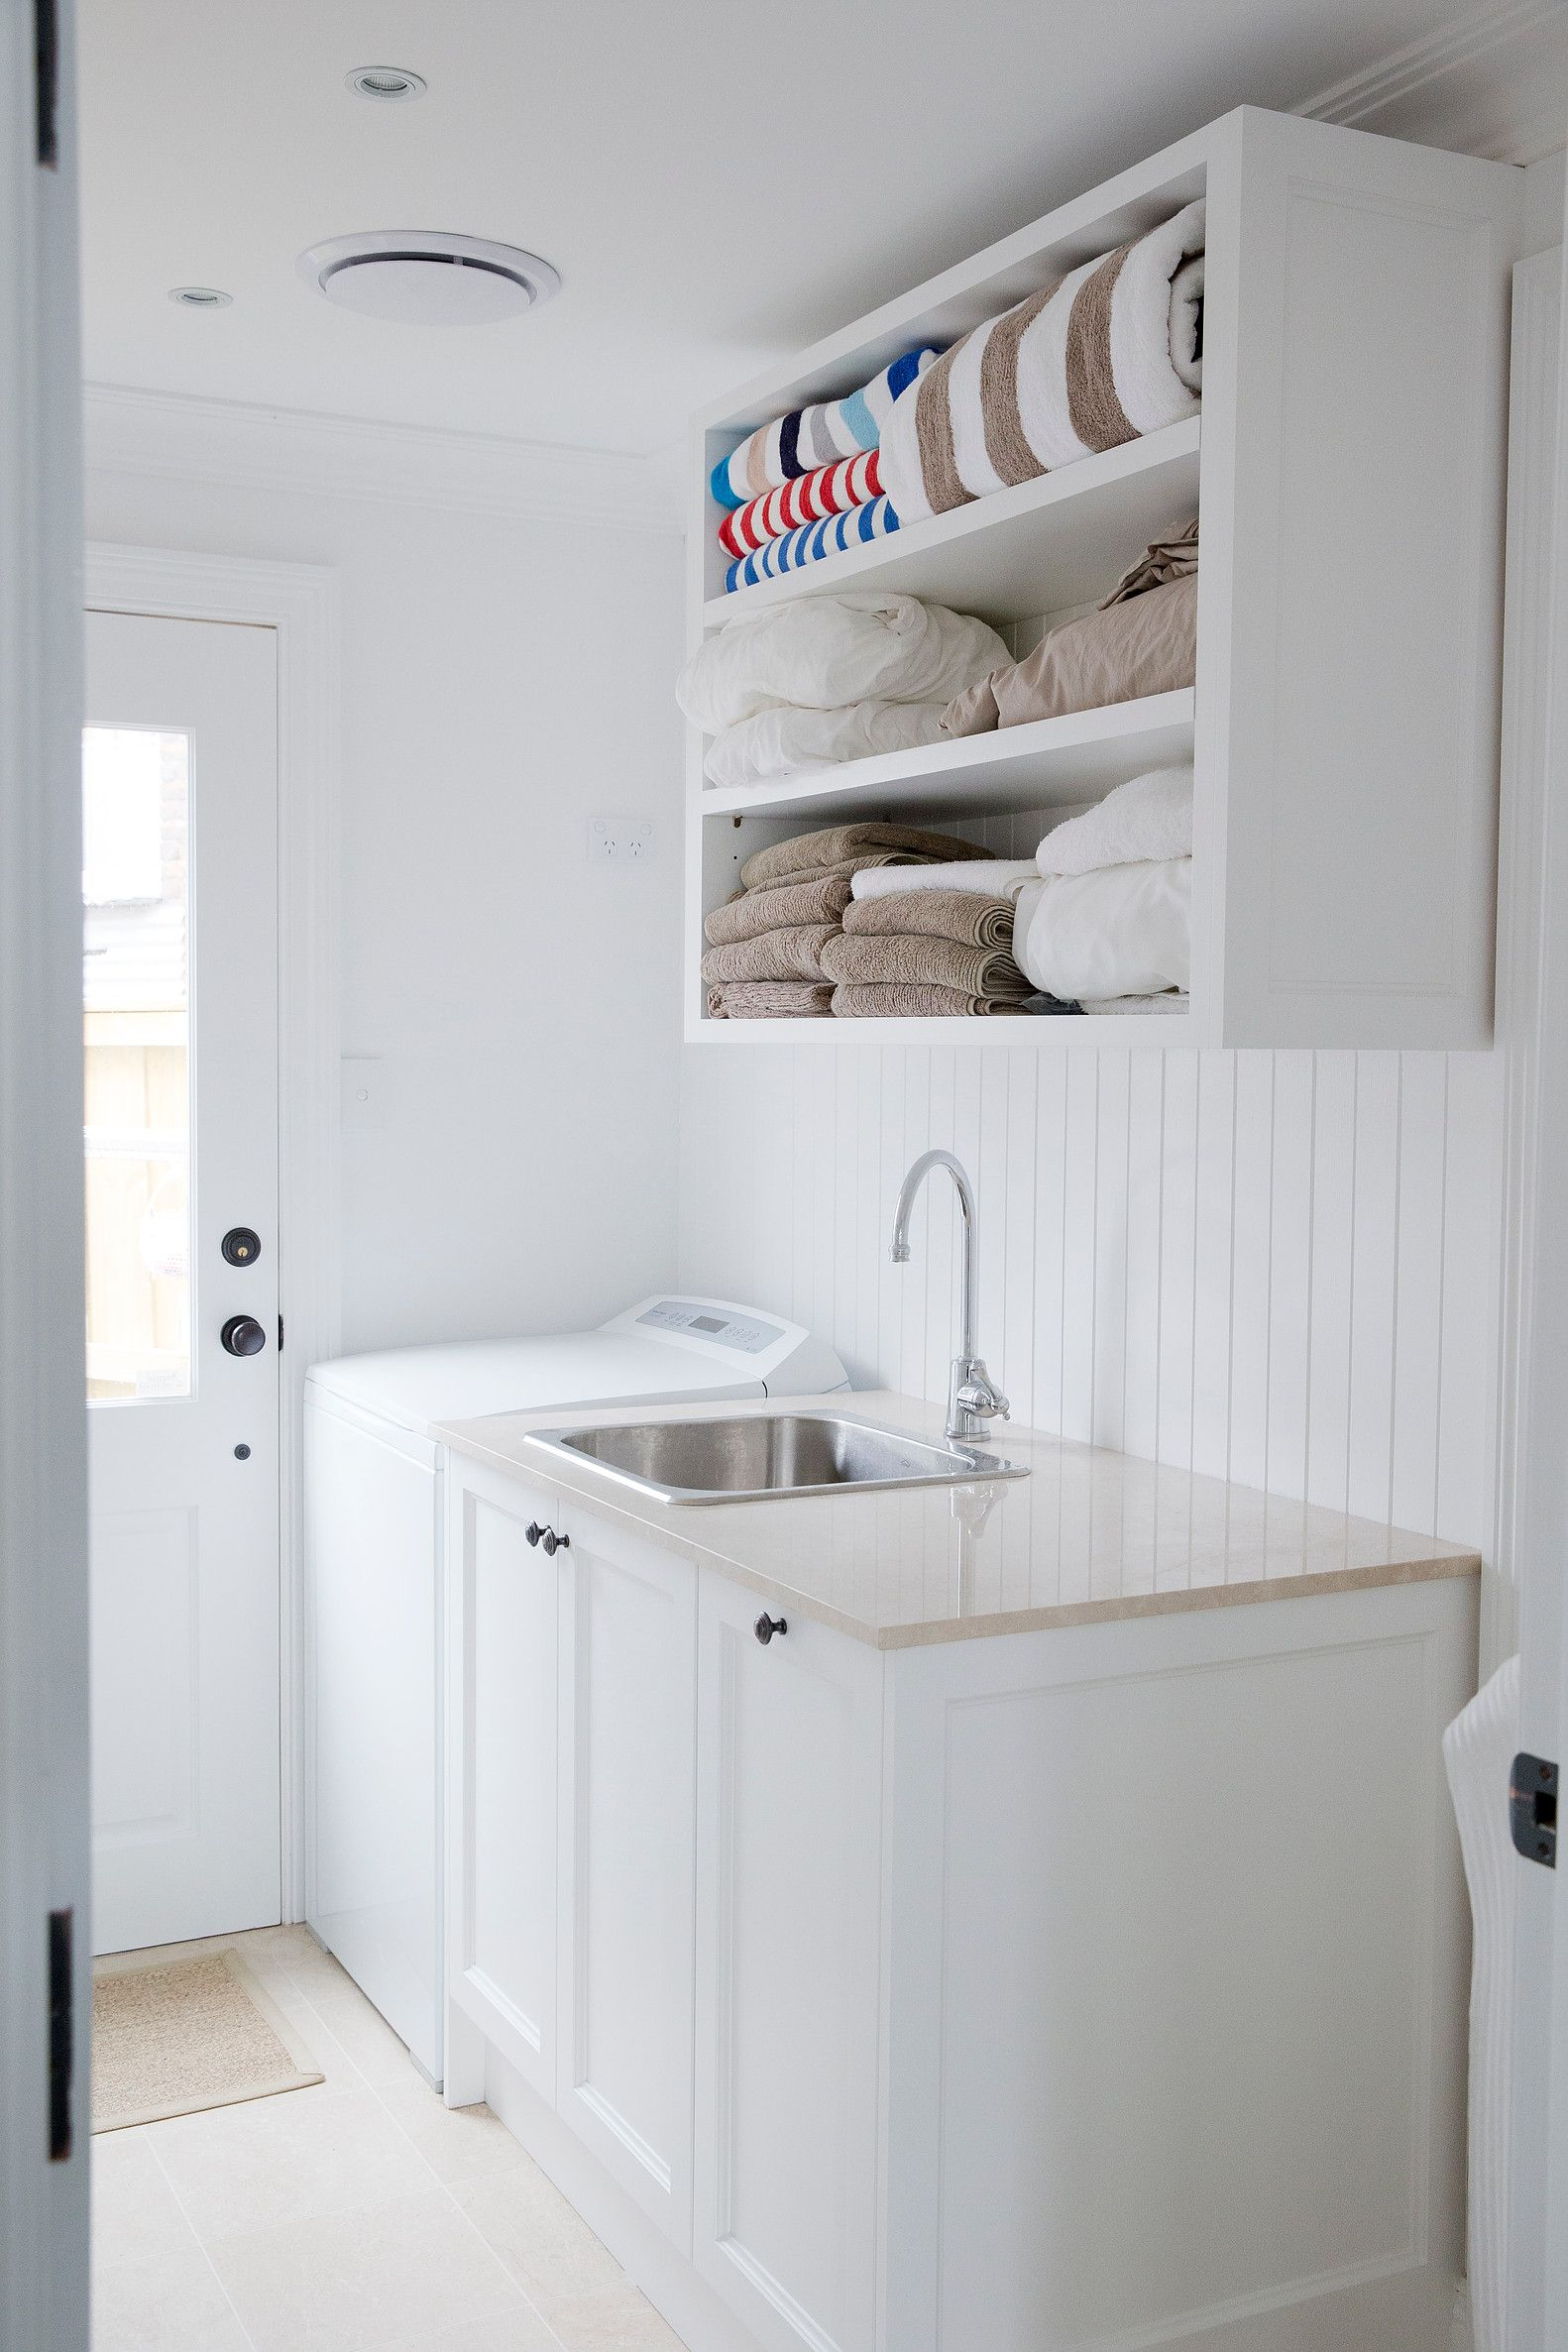 Provincial Kitchens - Laundries